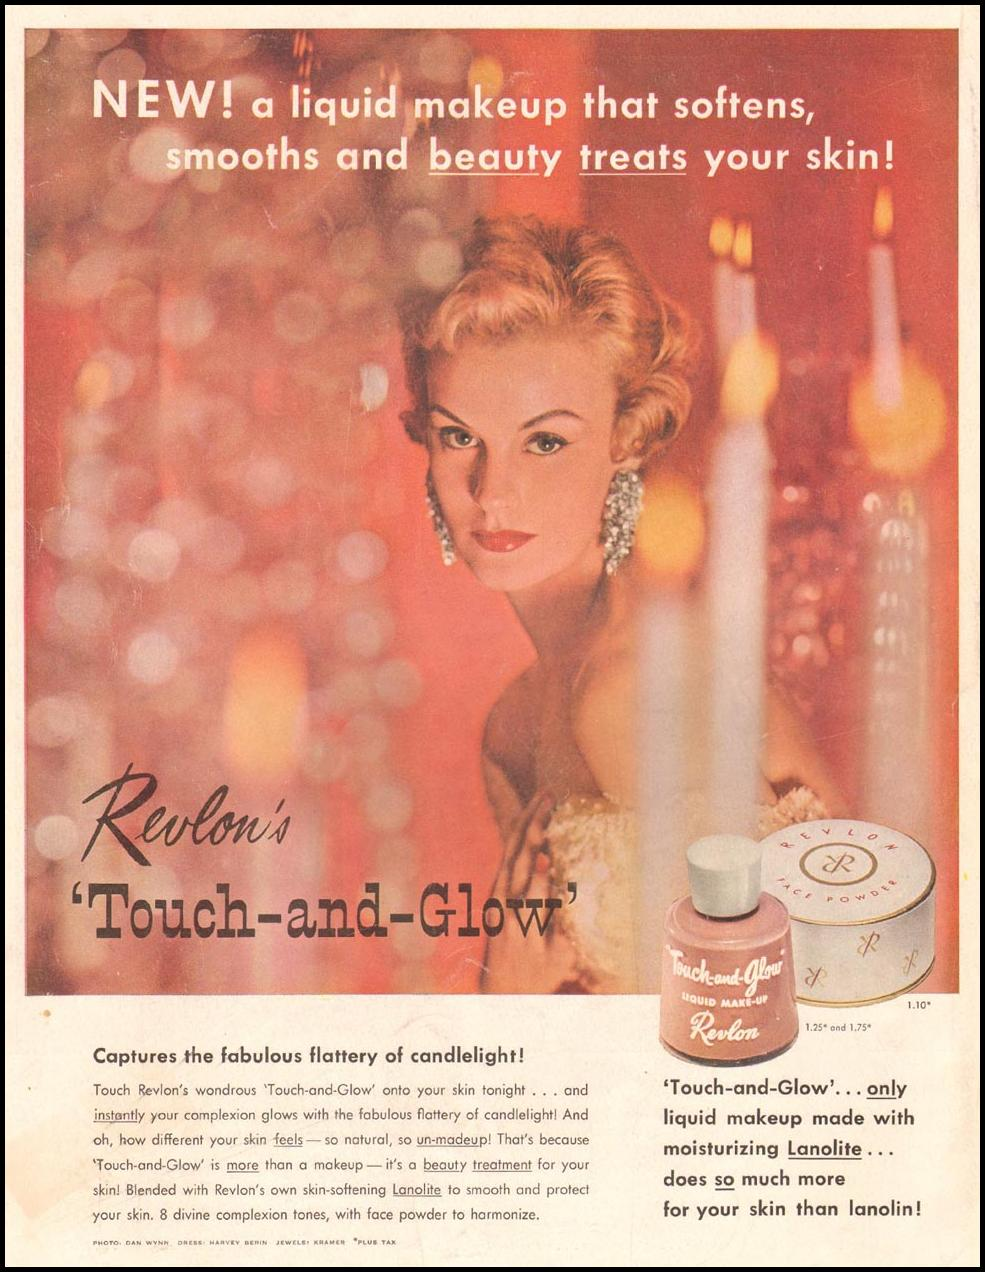 REVLON'S TOUCH-AND-GLOW LADIES' HOME JOURNAL 03/01/1954 BACK COVER